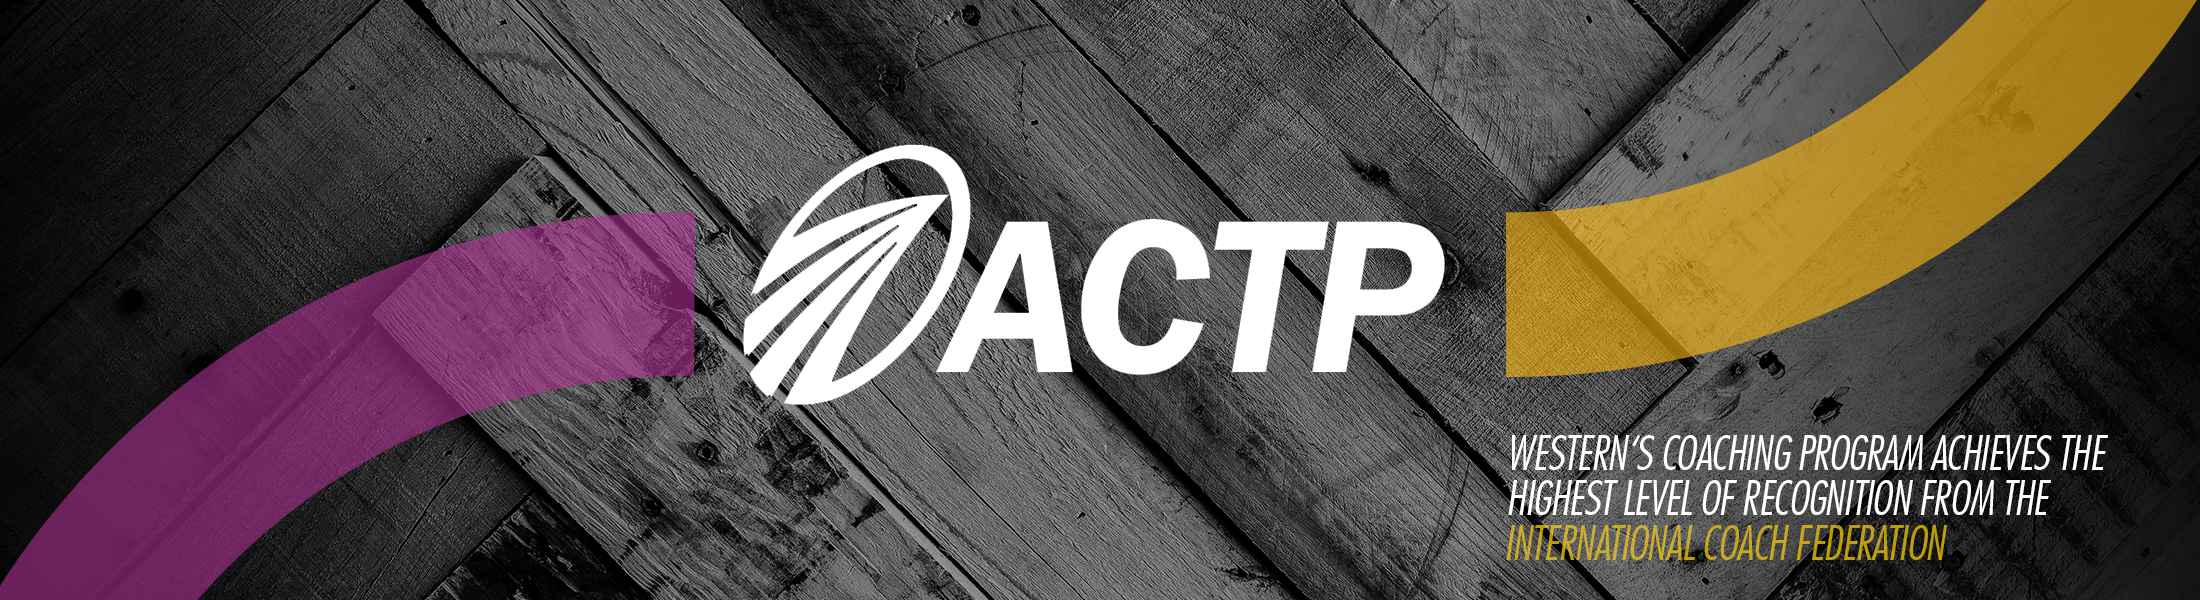 Western Seminary coaching achieves ACTP approval from the International Coach Federation.